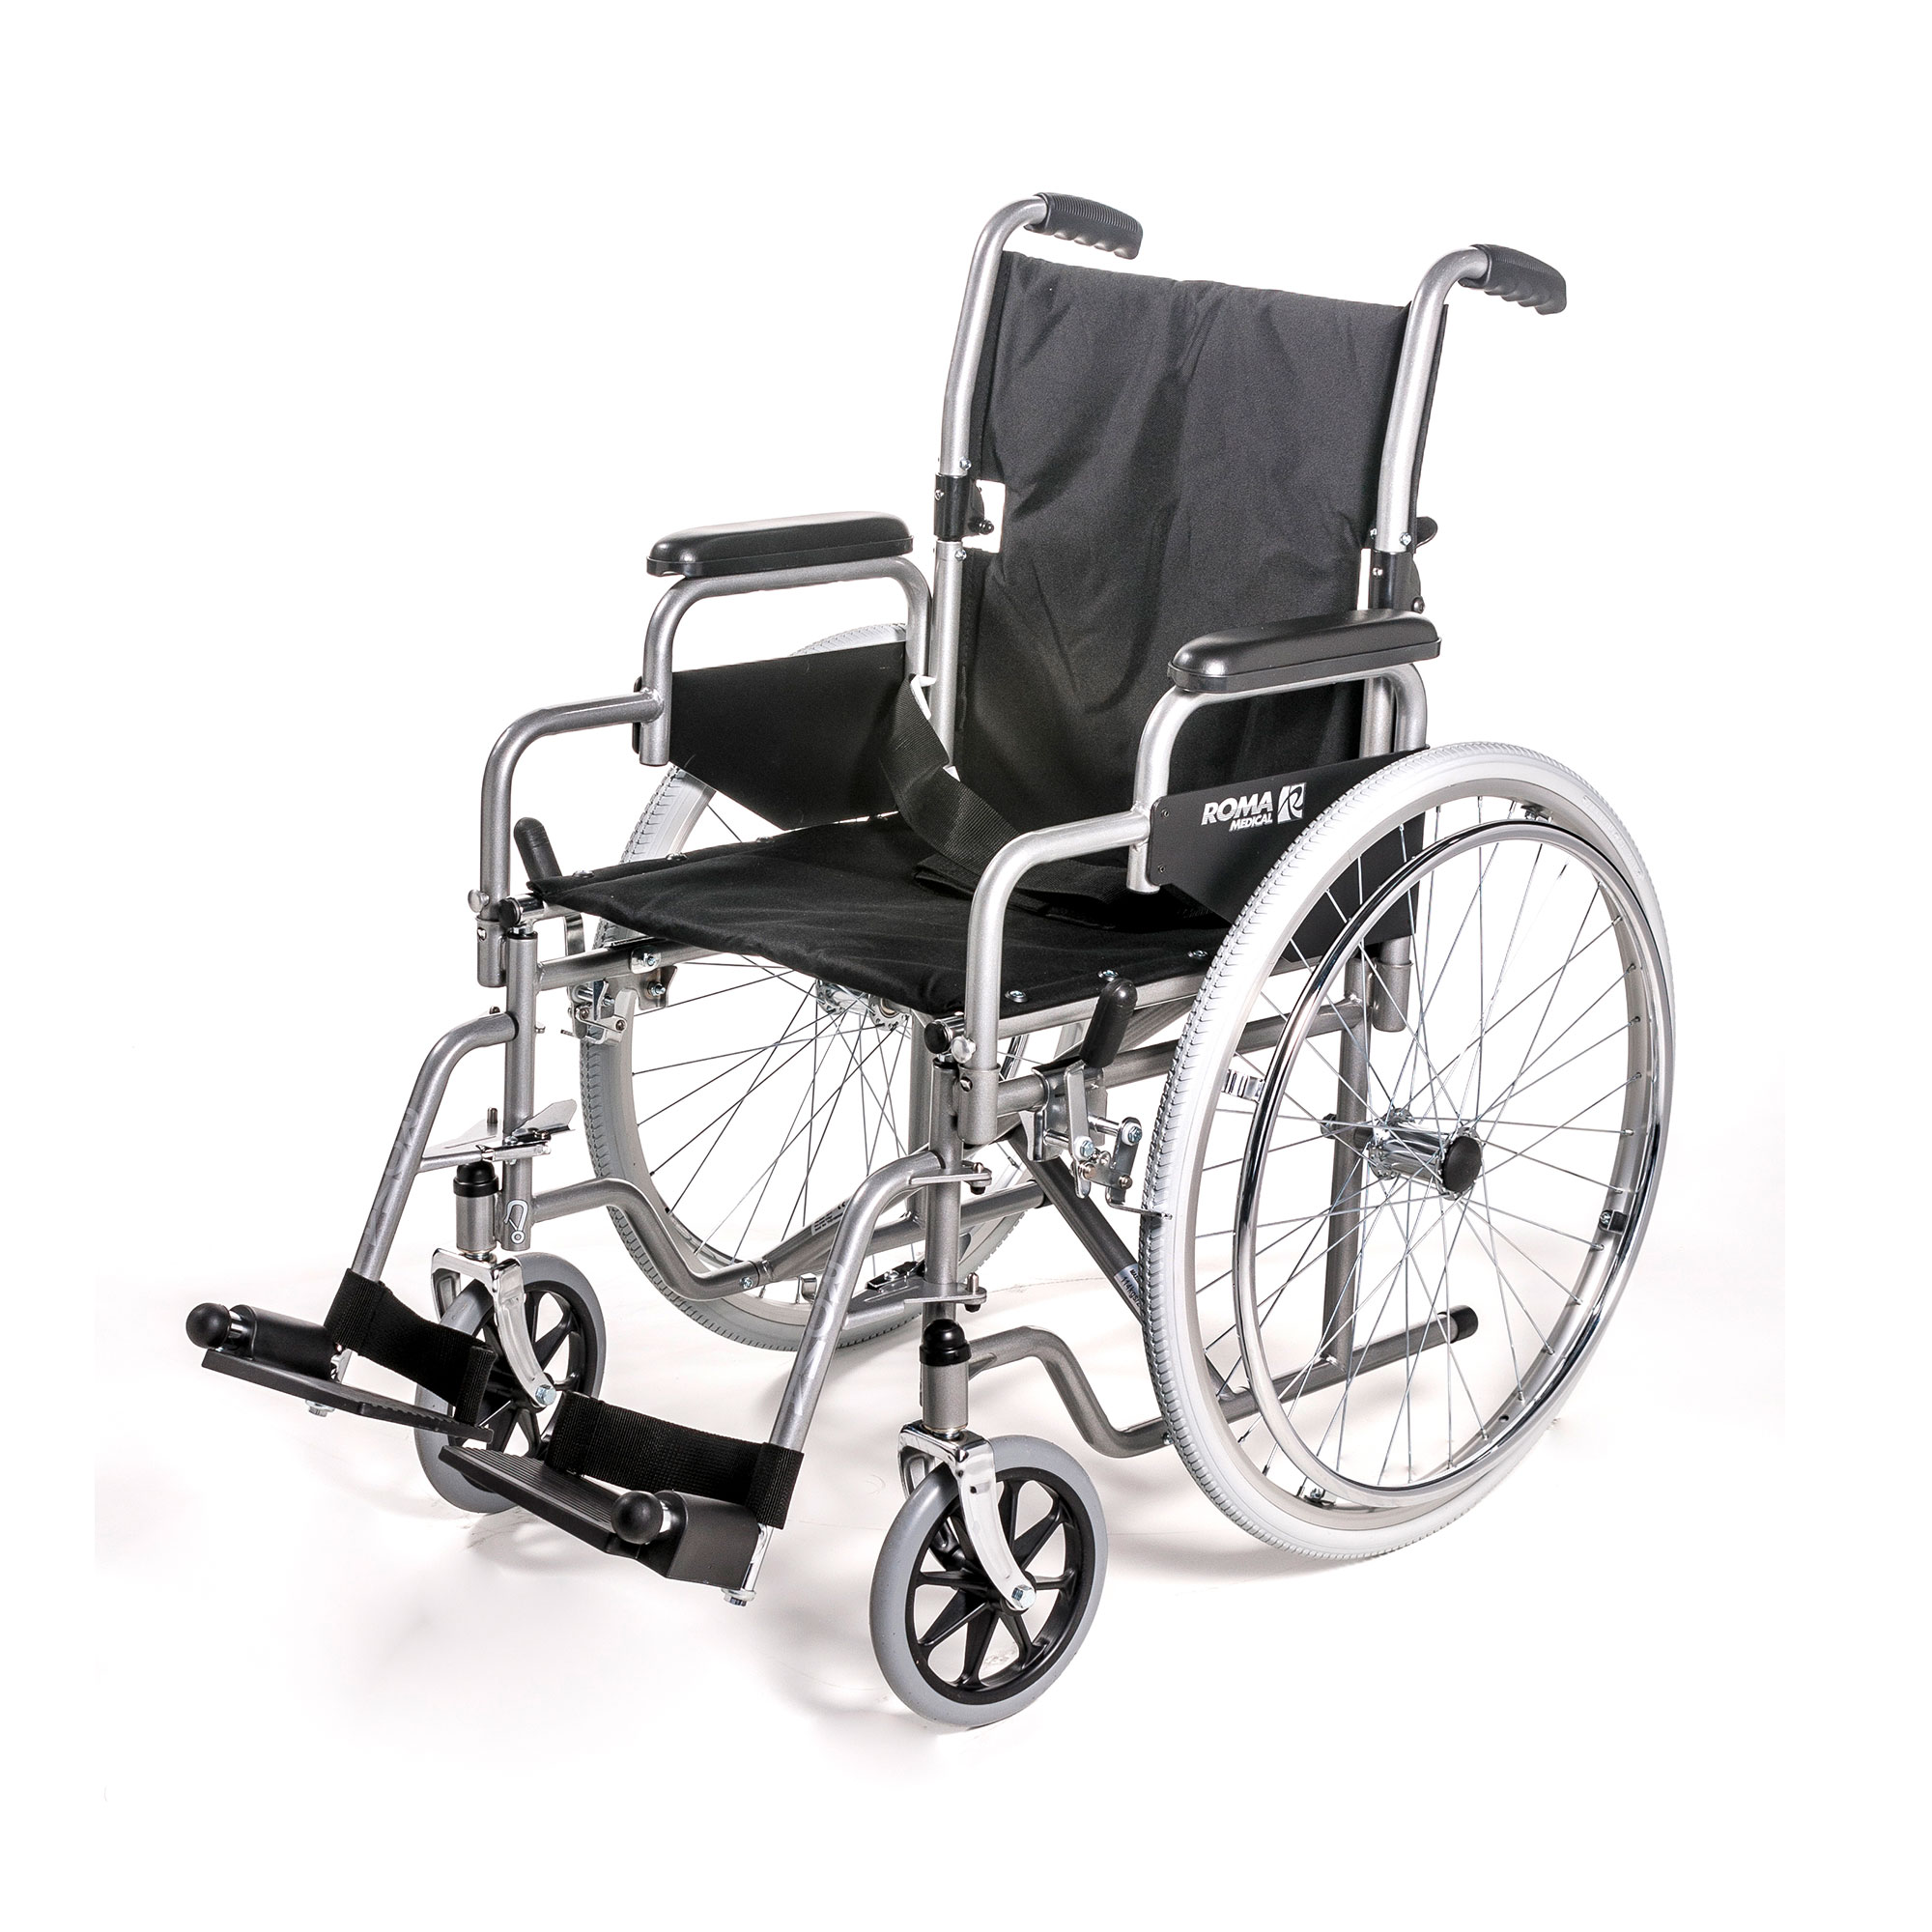 1000 Self Propelled Wheelchair With Detachable Arms